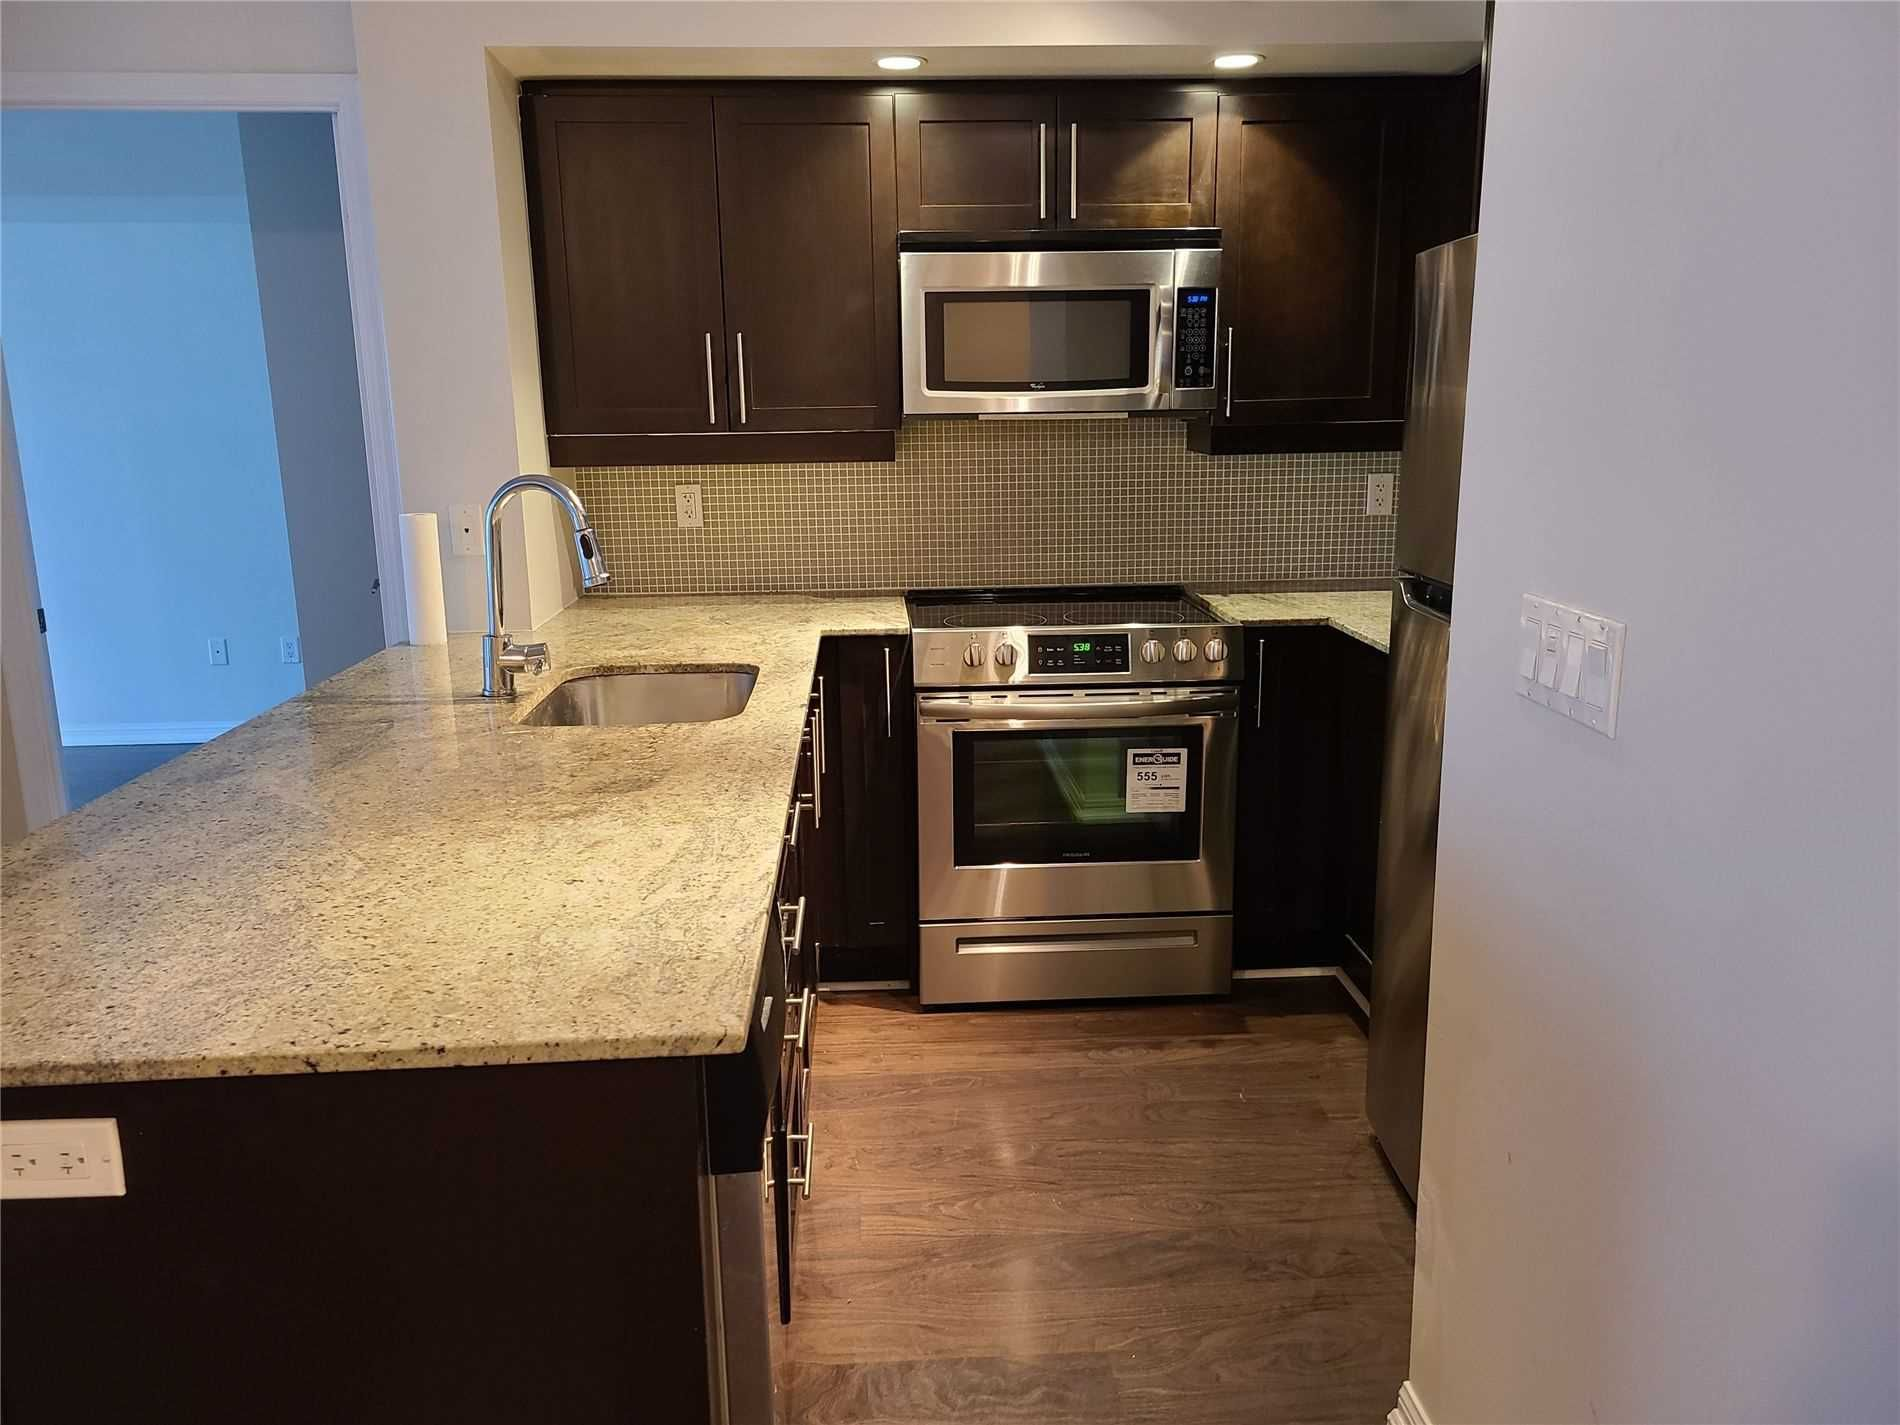 65 East Liberty St, unit 419 for rent in Toronto - image #1